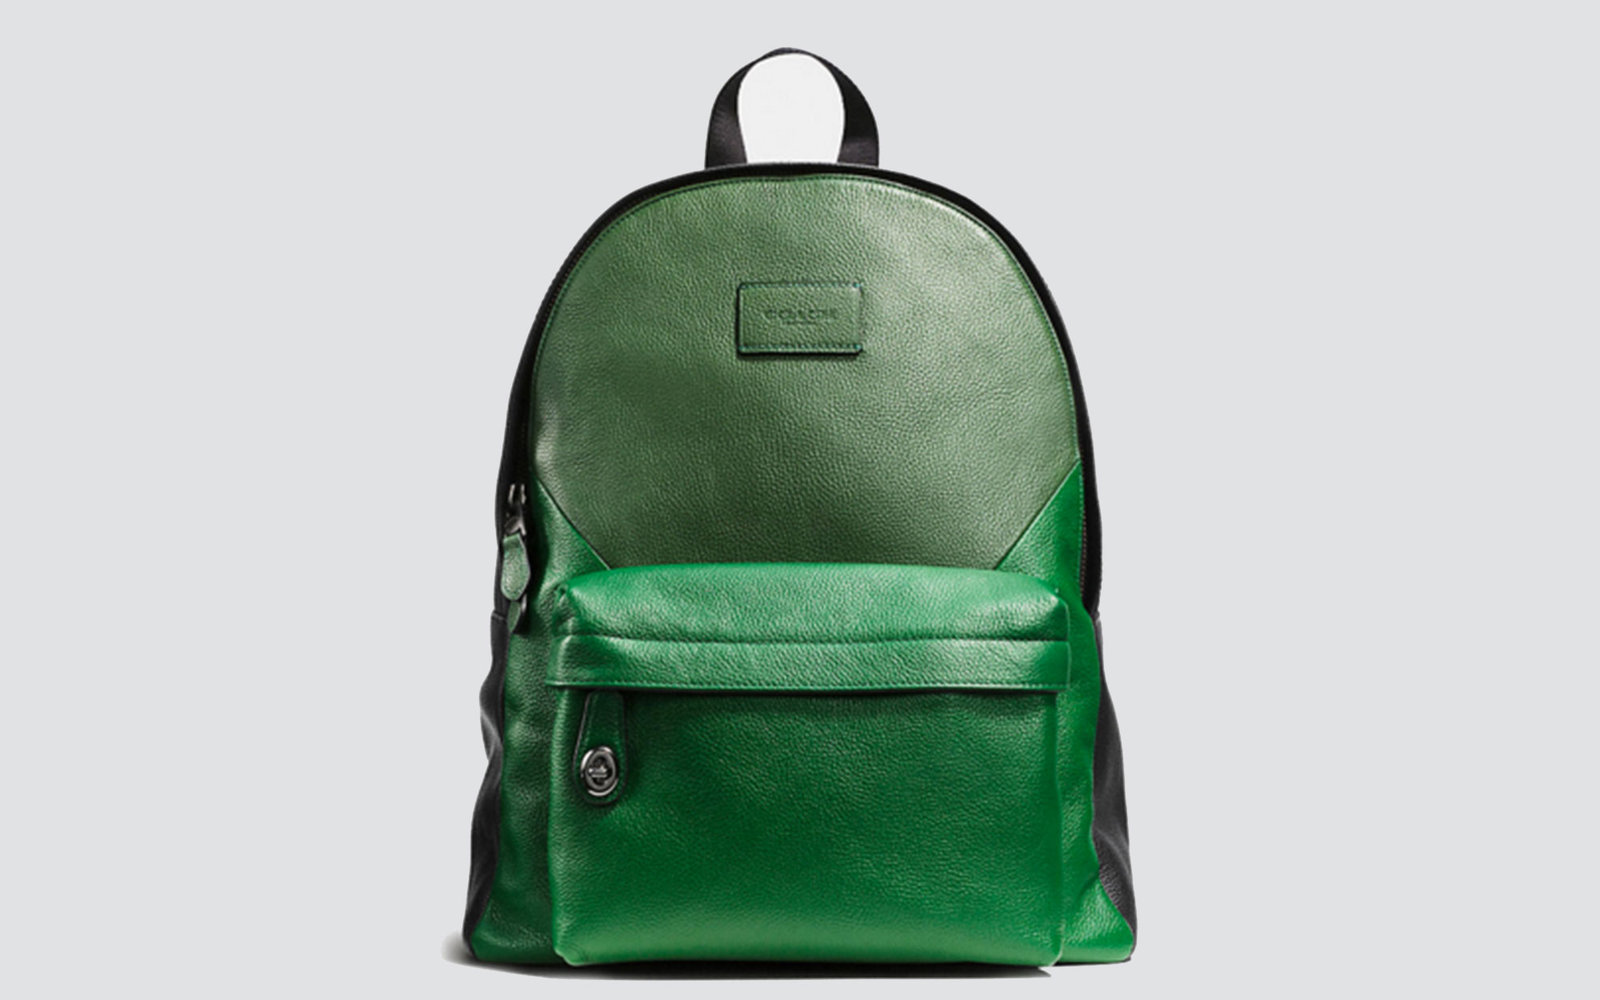 Coach green leather backpack